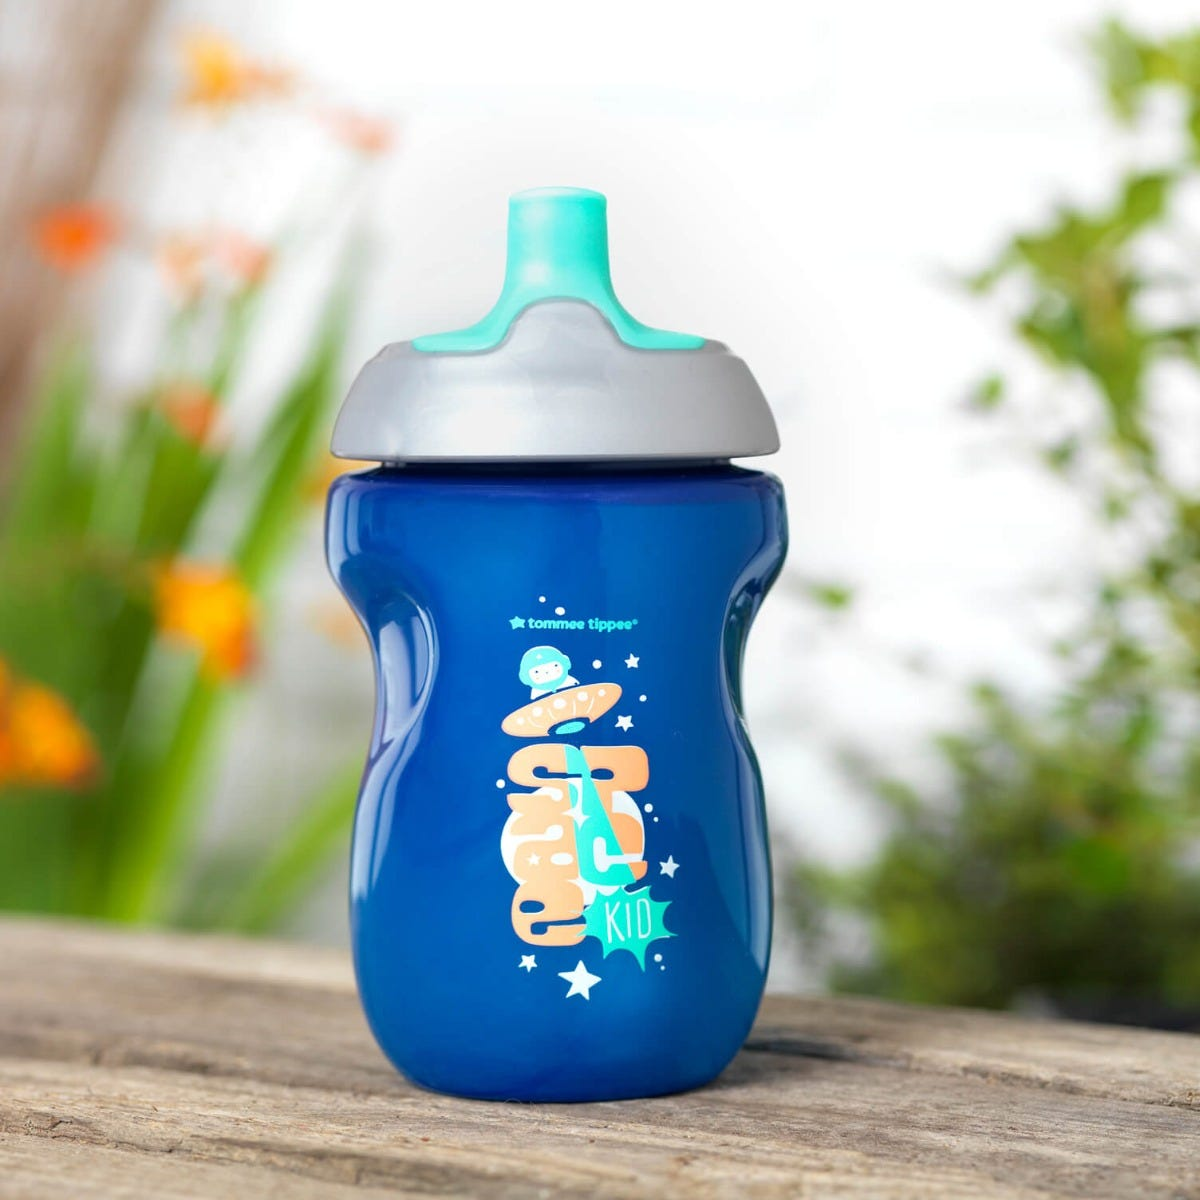 blue-active-Sports-Bottle-12-months-plus-with-space-kid-design-outside-on-bench